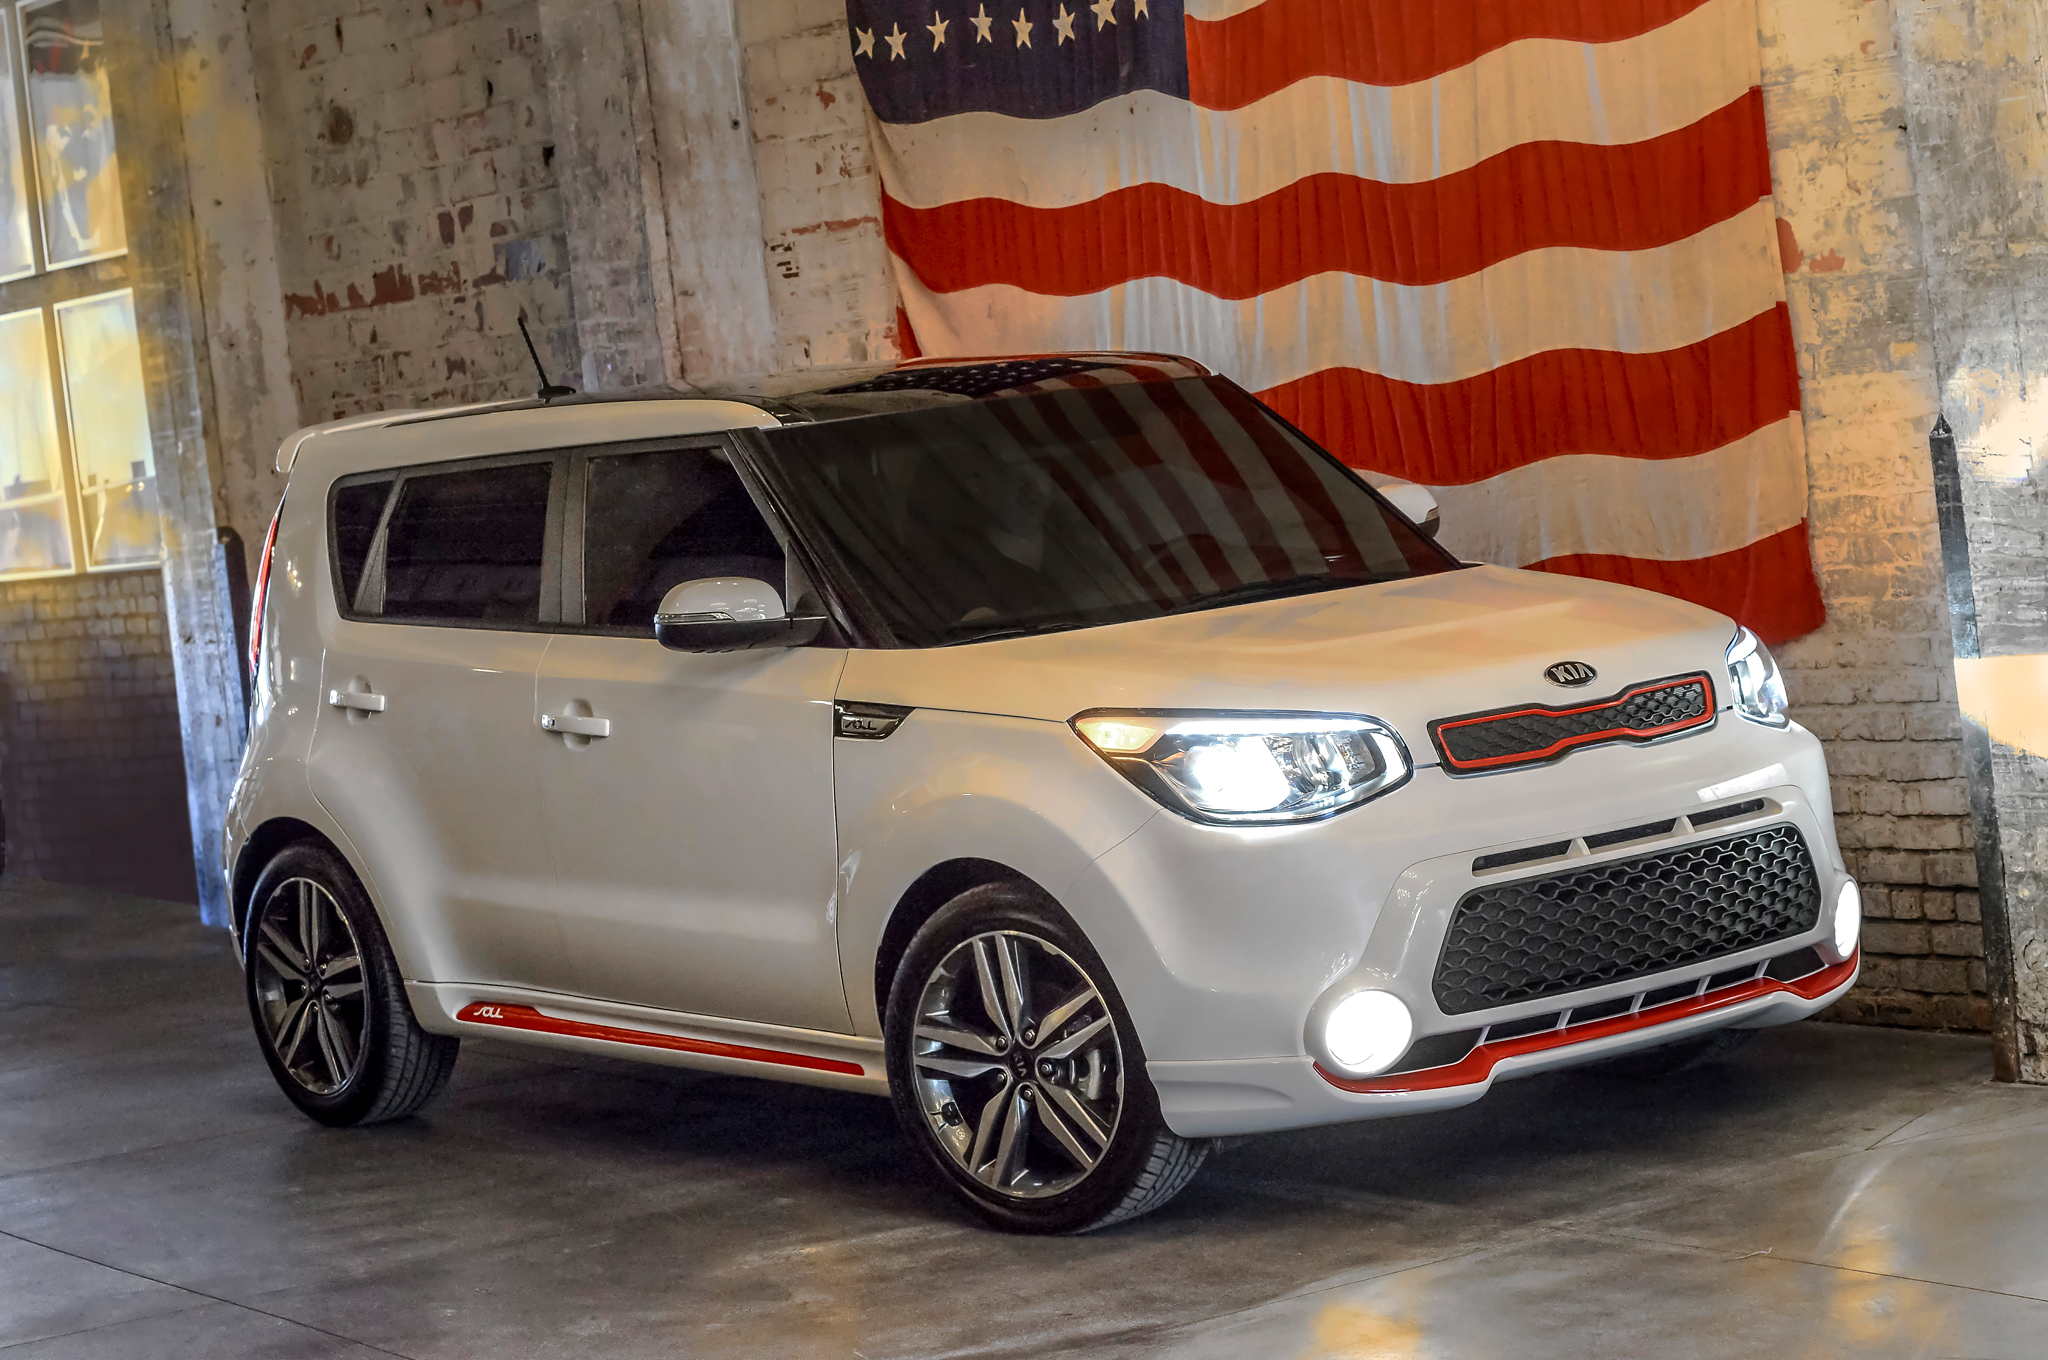 2014 Kia Soul Red Zone Special Edition Looks More like Track'ster Concept